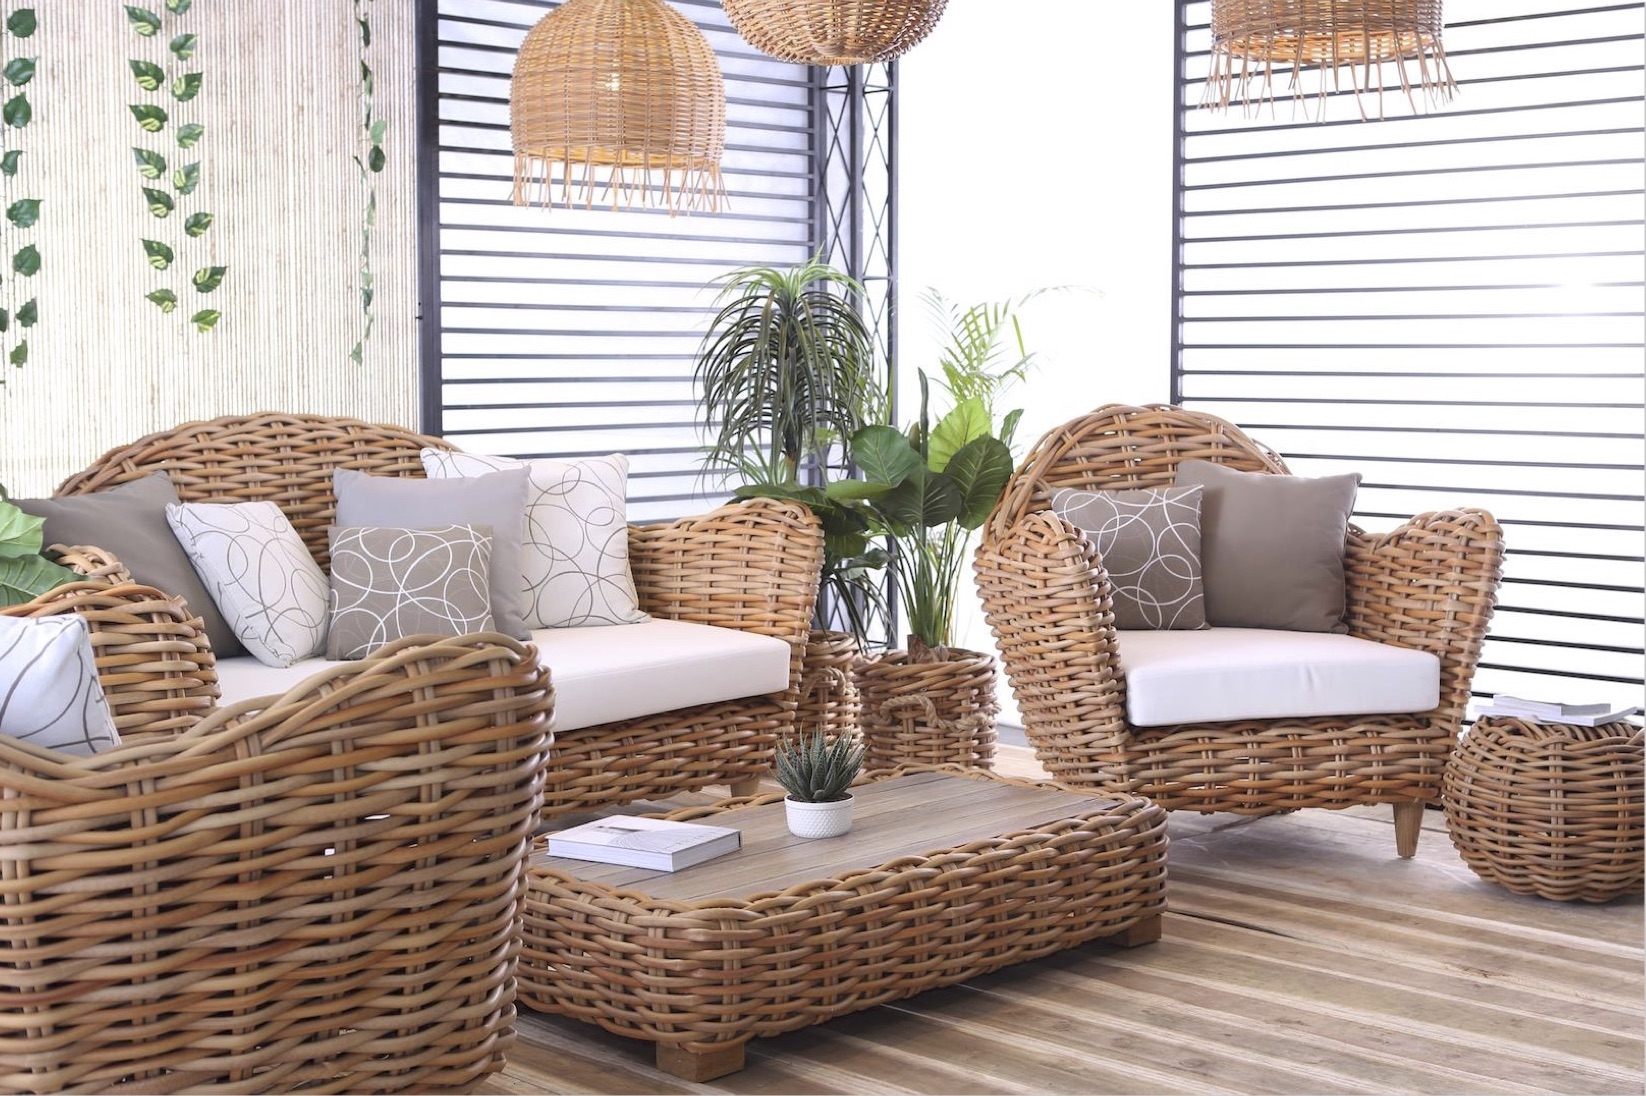 Ami Aloha Club Chair Wicker Sofa Outdoor Furniture Hotels Sunbrella Wicker